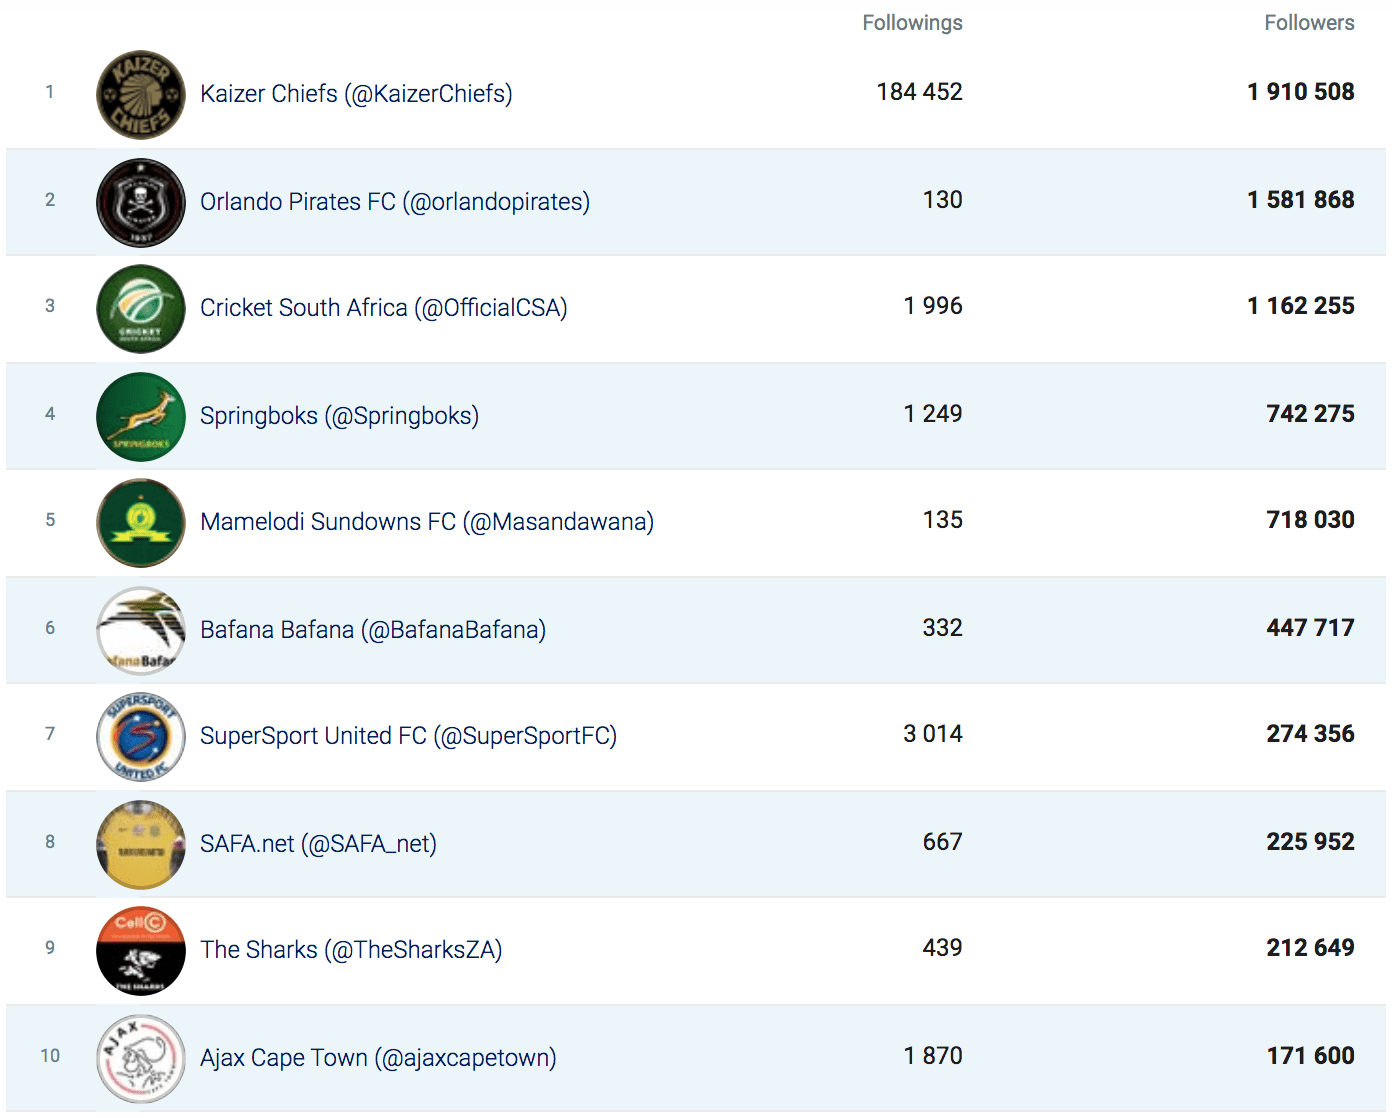 Bra Willy Seyama | eNitiate | Socialbakers | Top 10 Twitter Sport Brands by No. of Followers | COVID-19 | South Africa | 21 Aug 2020